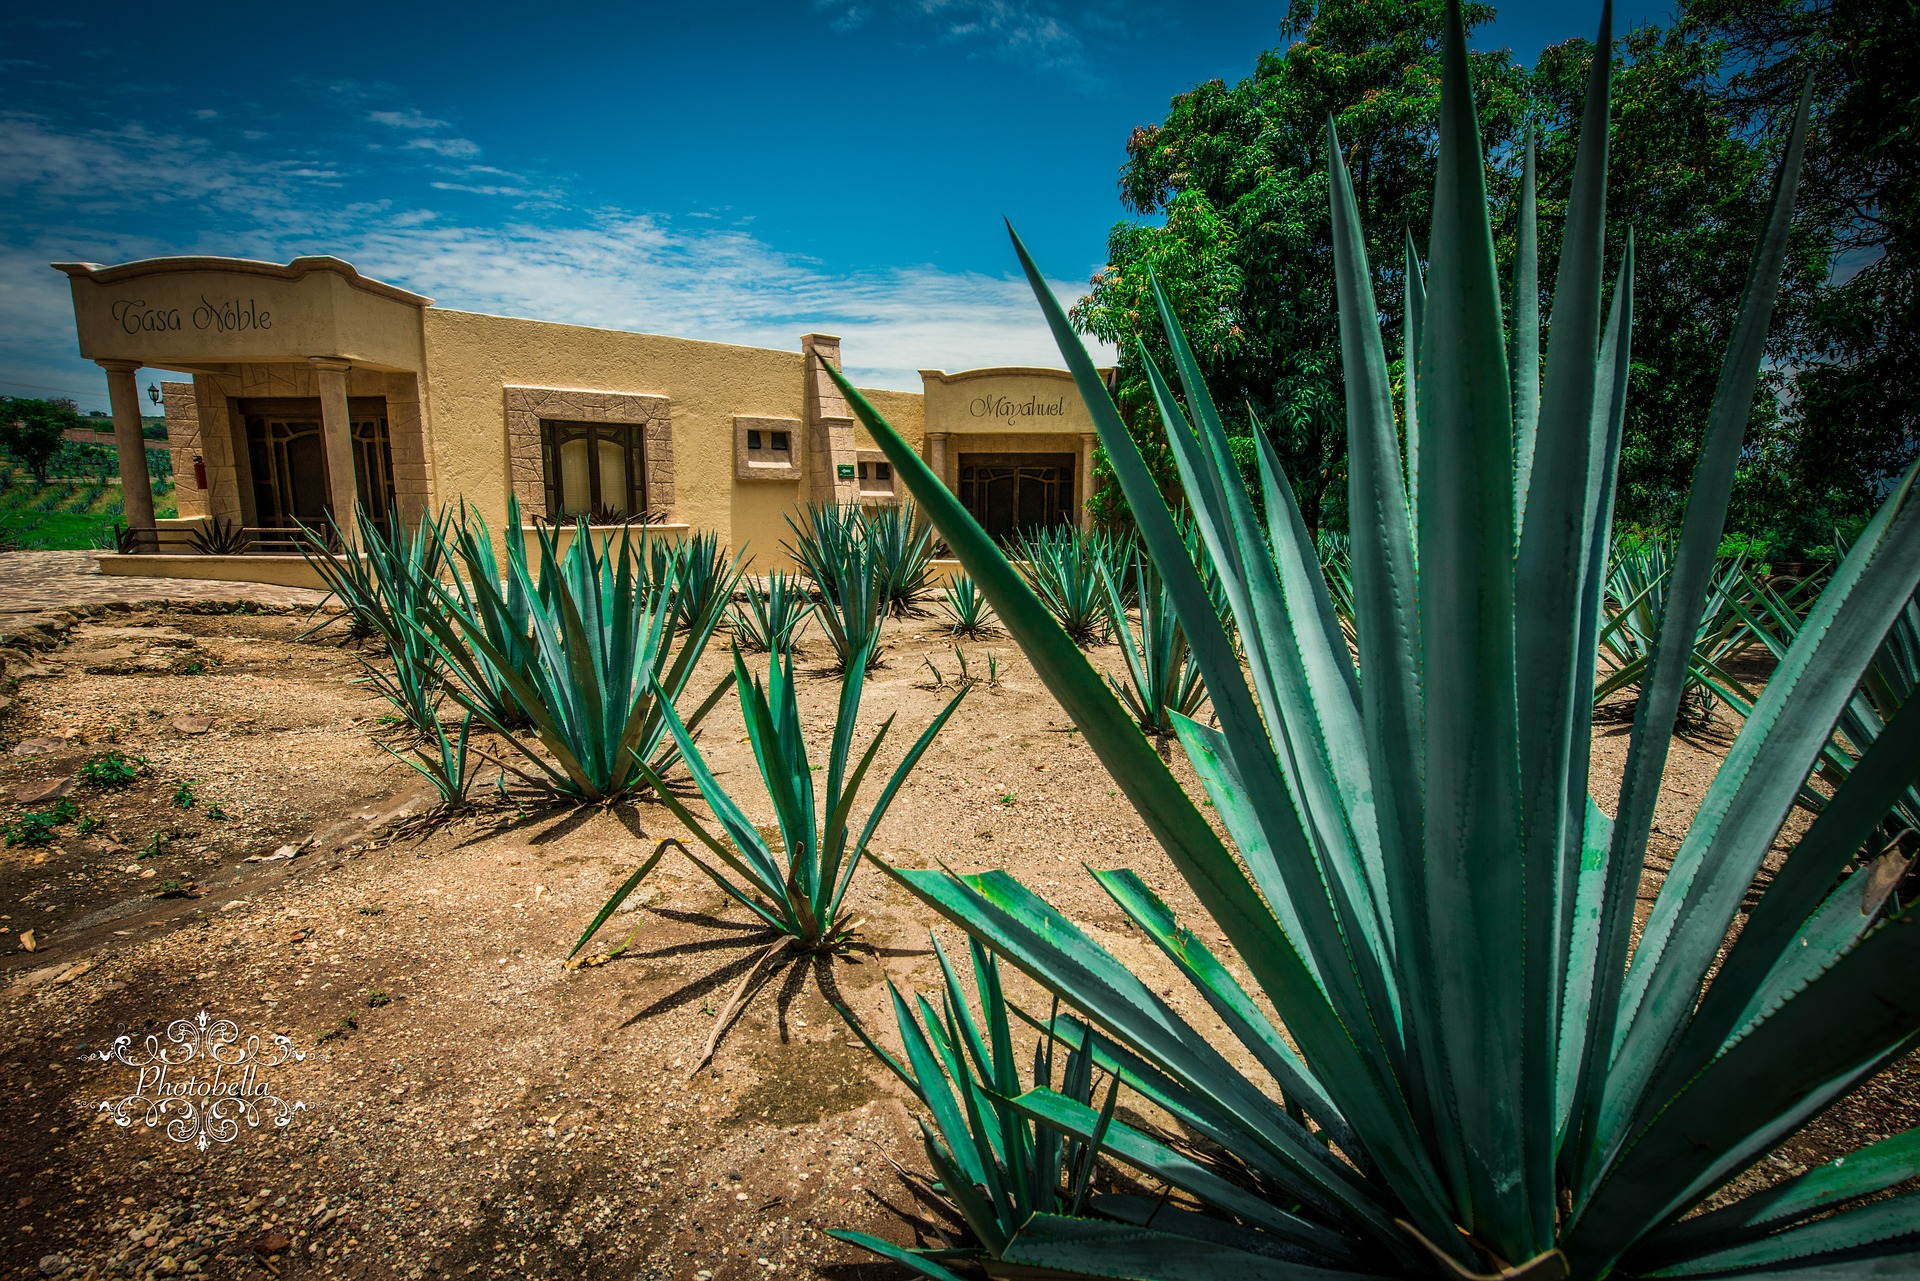 High quality tequila: Recommendations from Mexico